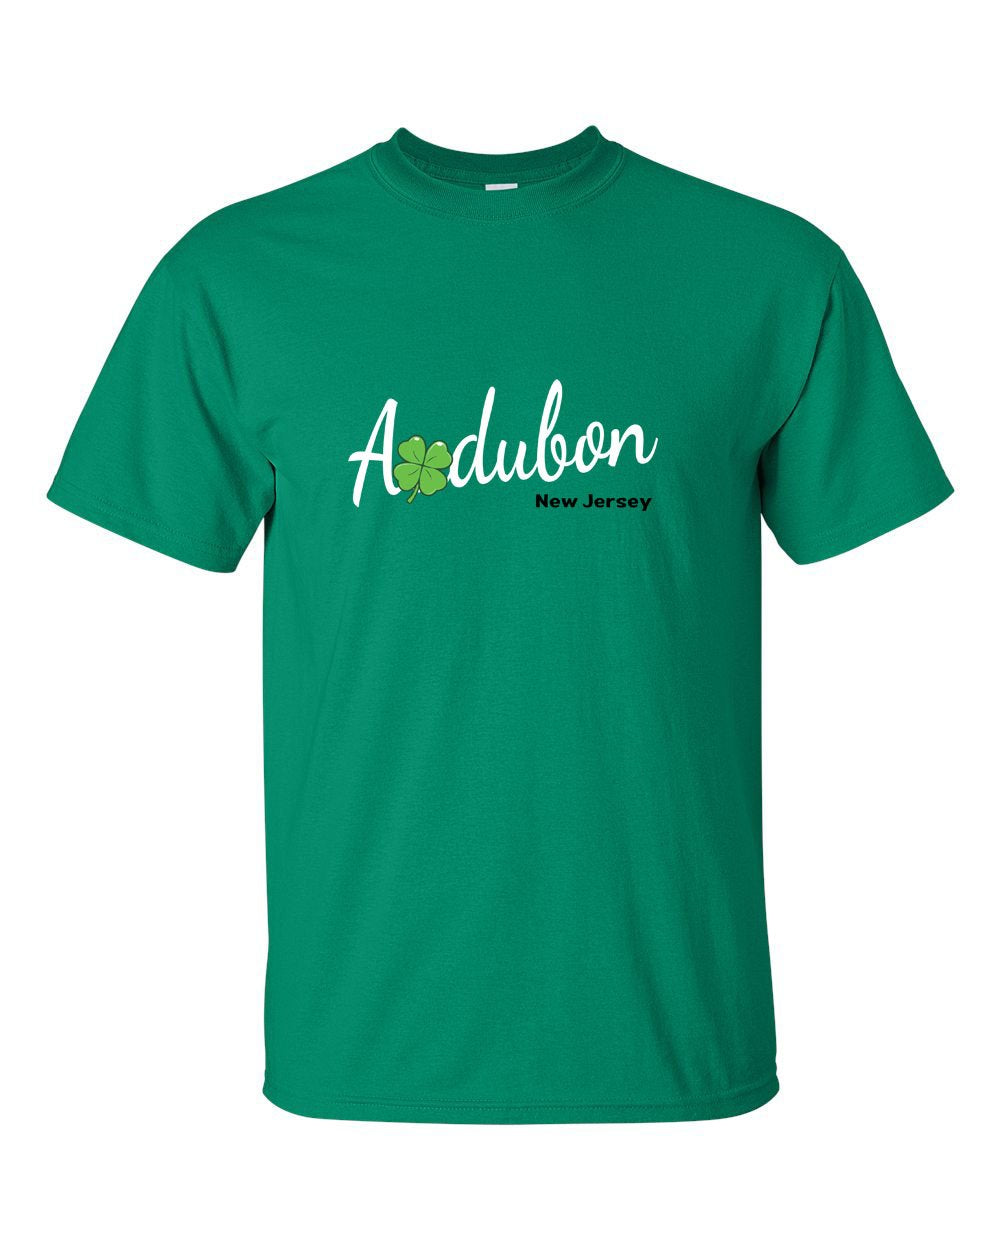 Irish Audubon Mens/Unisex T-Shirt